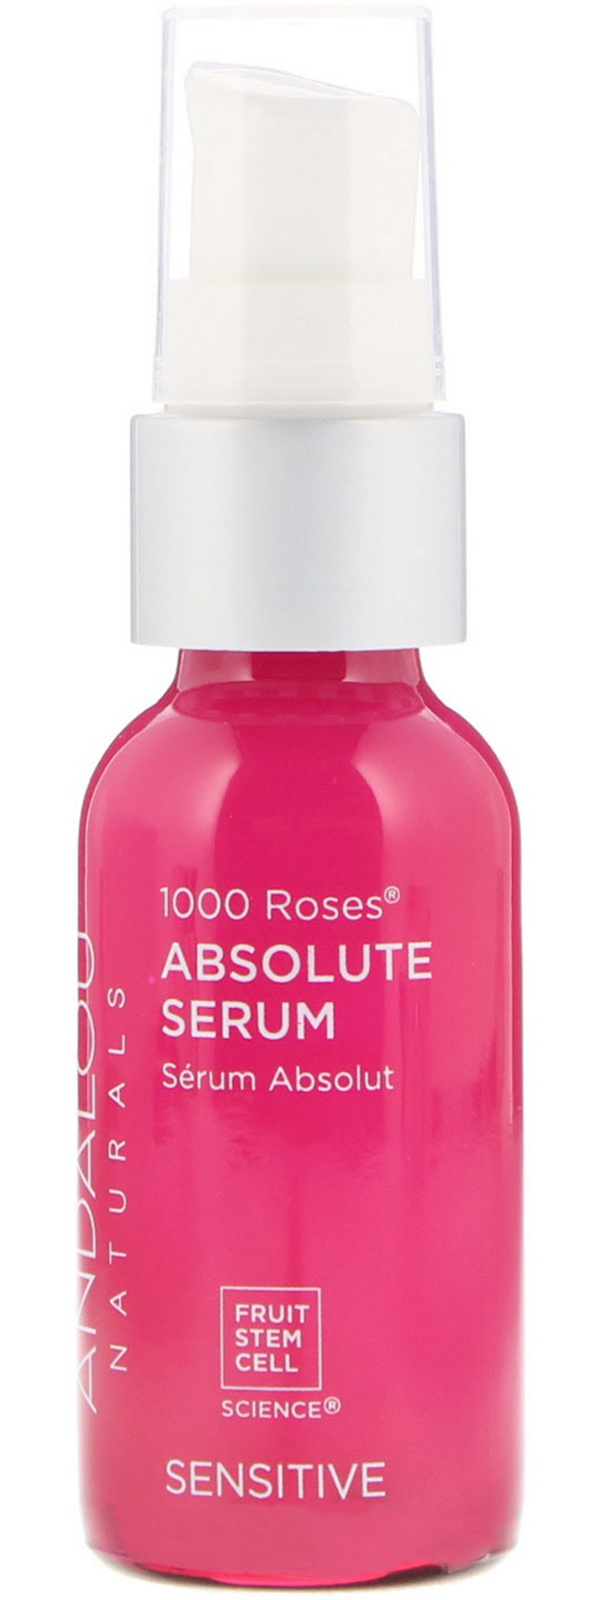 Andalou Naturals 1000 Roses Absolute Serum, Sensitive